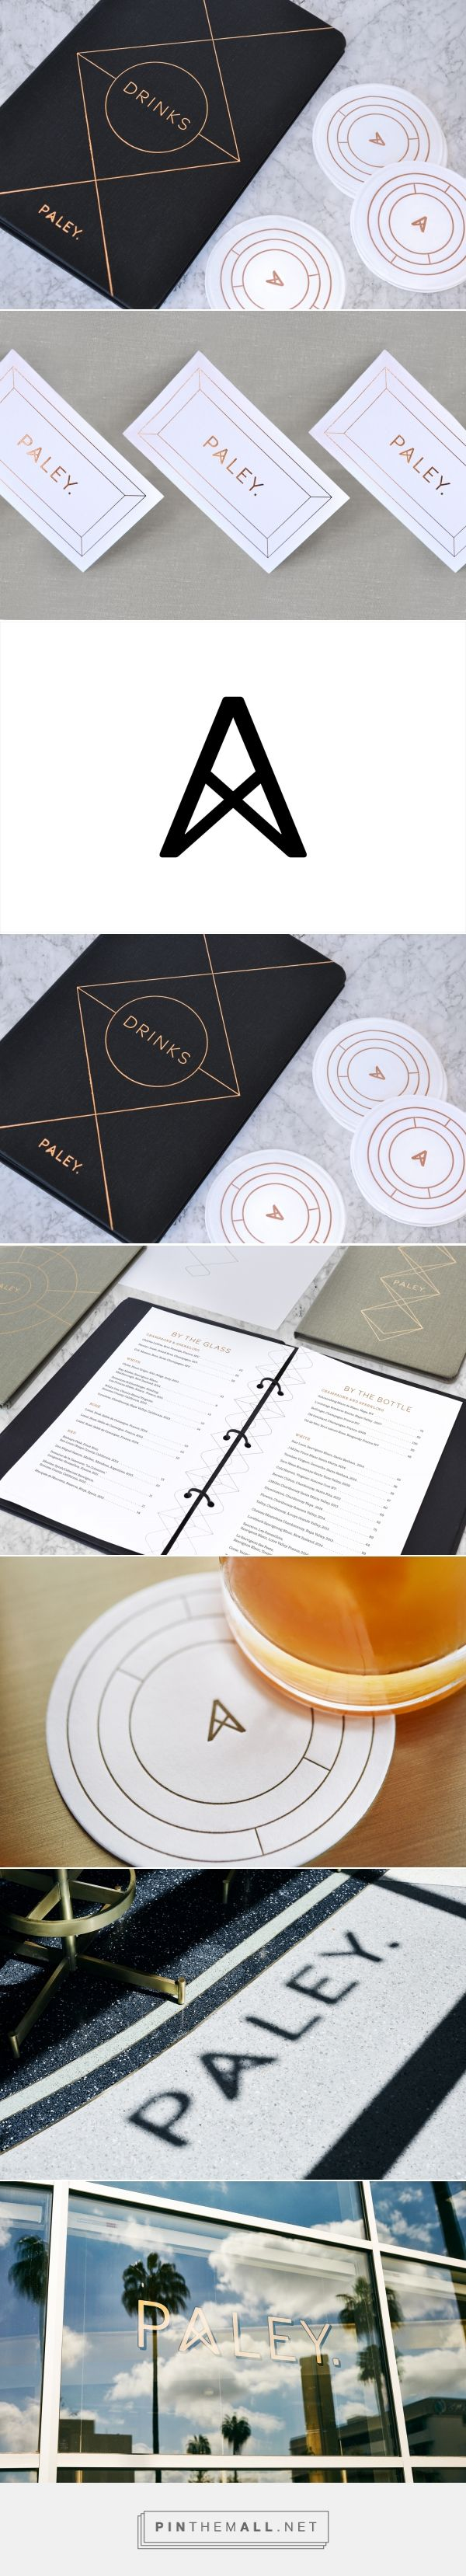 New Logo & Brand Identity for Paley by Mucca